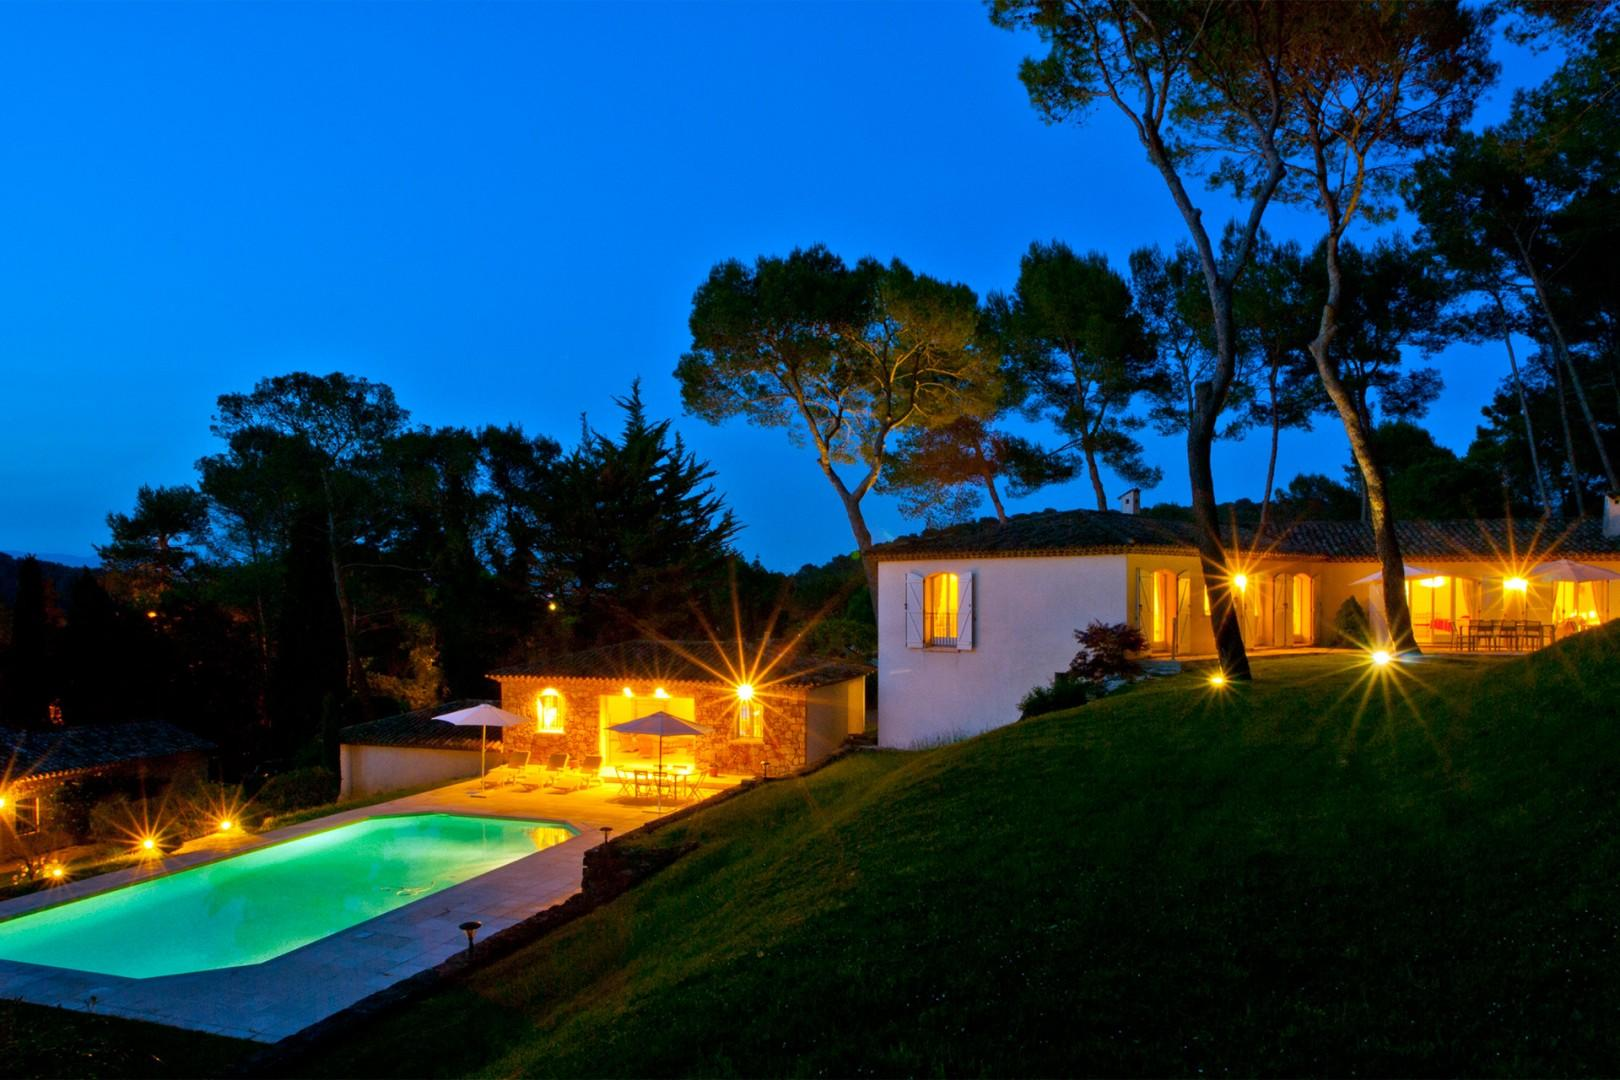 Spend relaxing evenings in this stunning villa